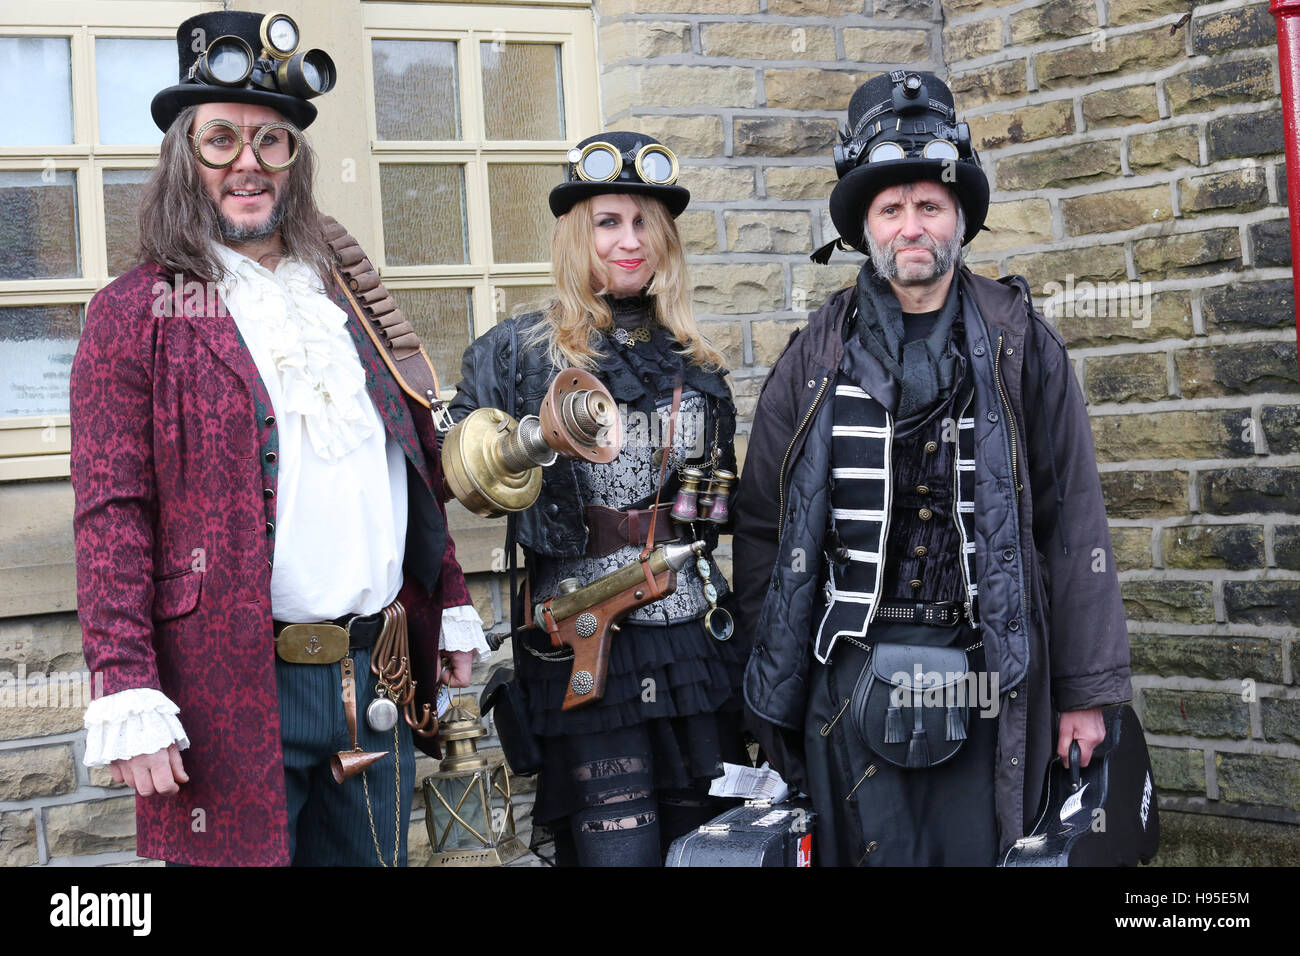 Haworth, UK. 19th Nov, 2016. Three steampunks stood next to a wall in Haworth, 19th November 2016. Credit:  Barbara Stock Photo